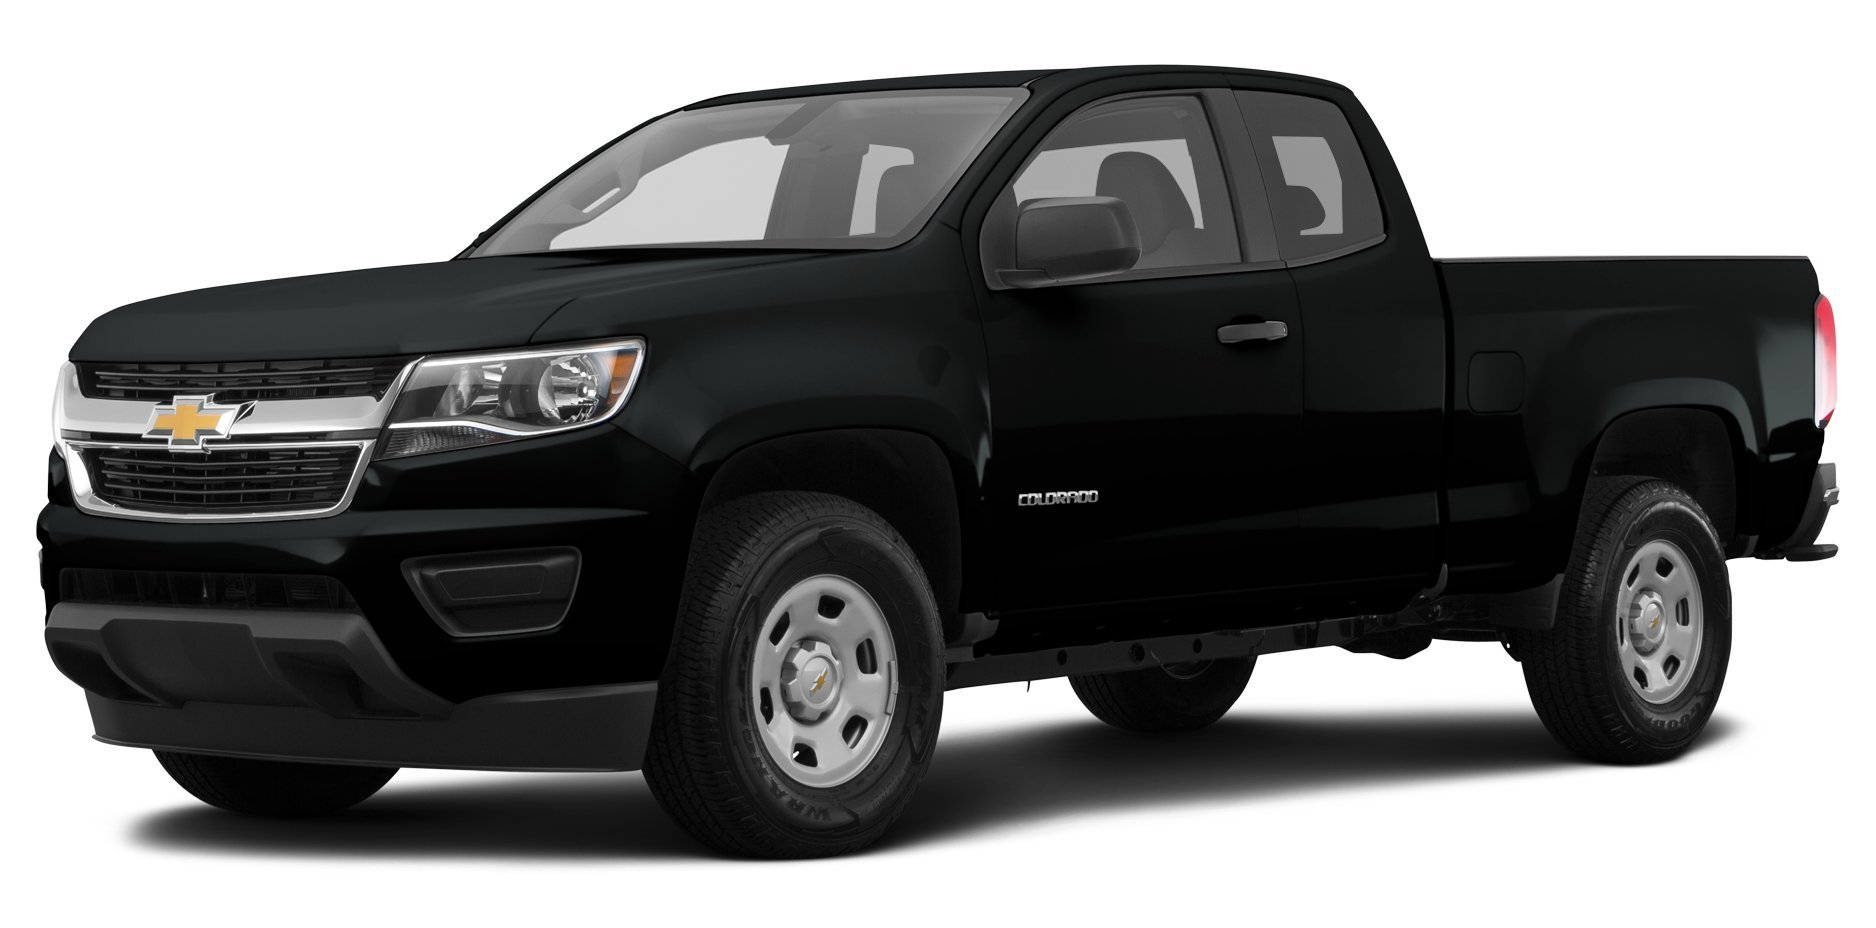 2016 chevrolet colorado reviews images and specs vehicles. Black Bedroom Furniture Sets. Home Design Ideas